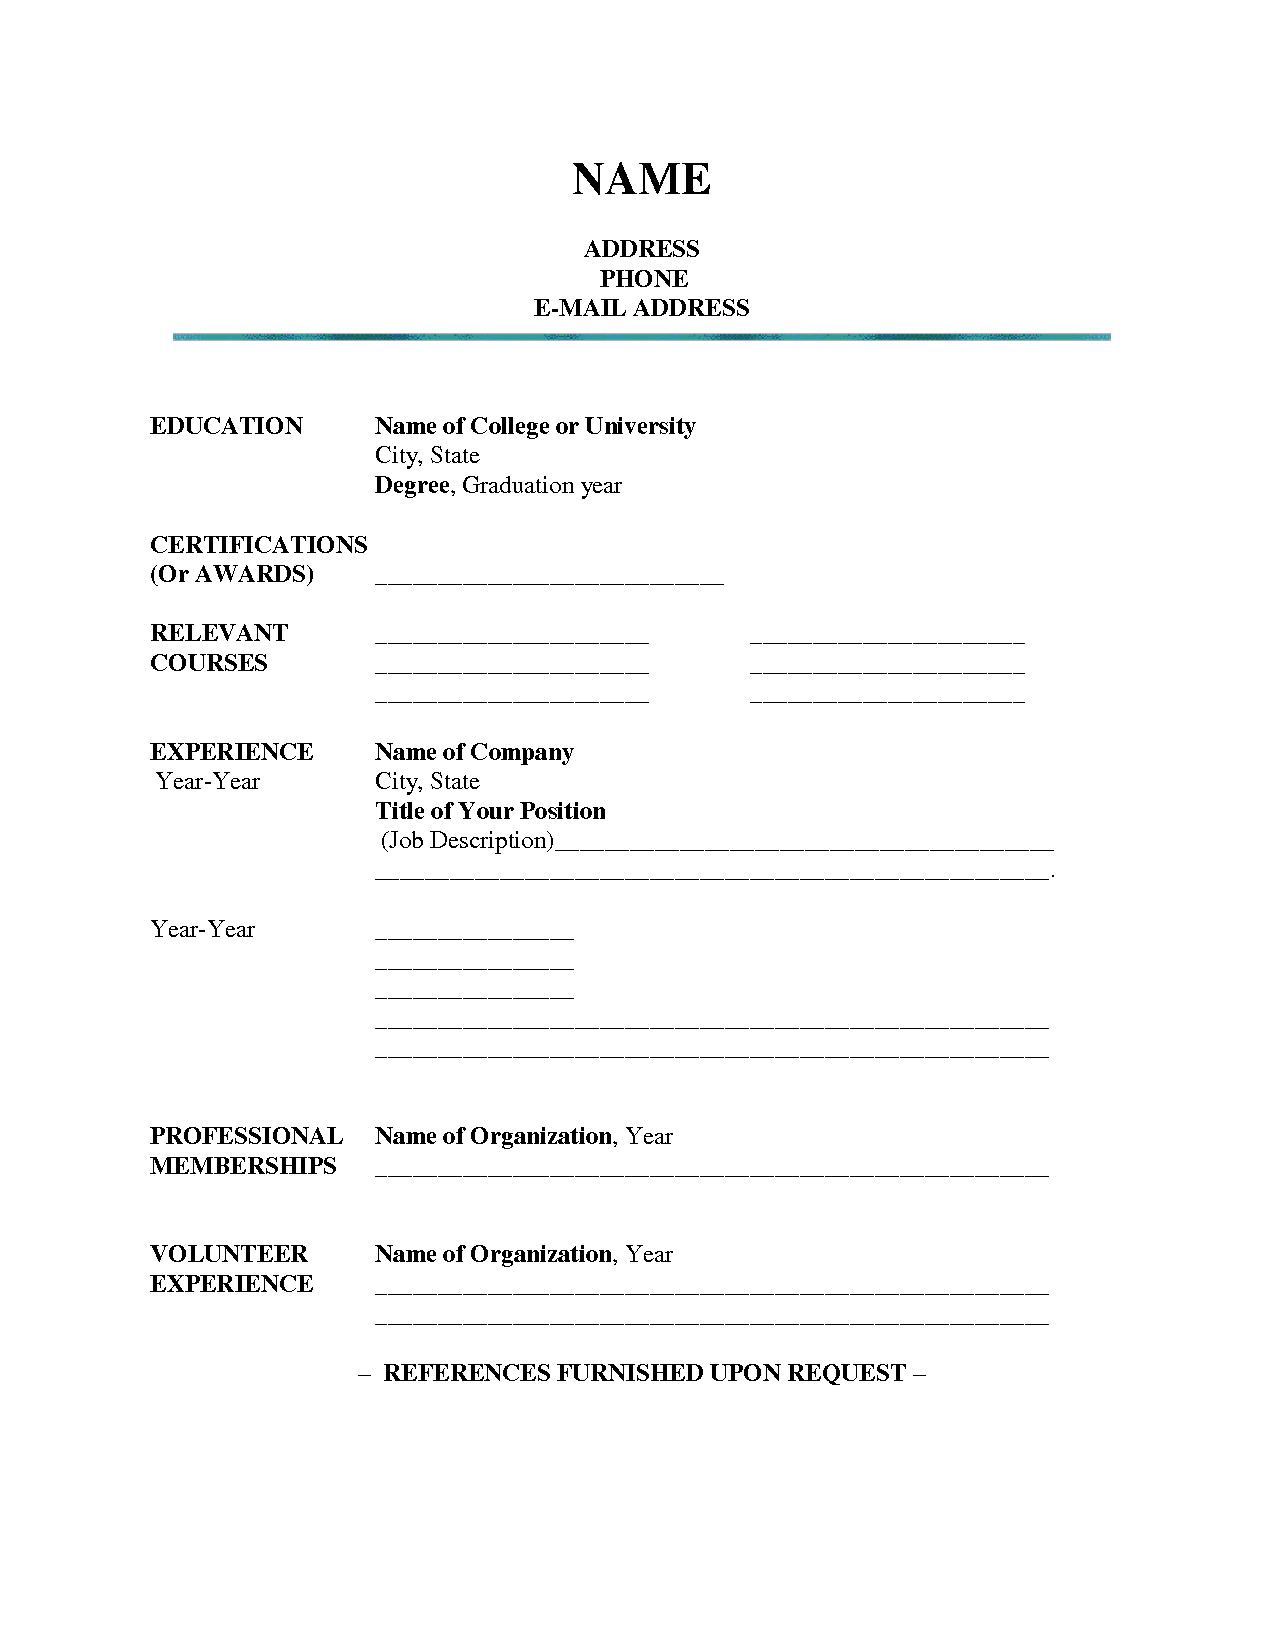 resume blank free resume templates word formats english